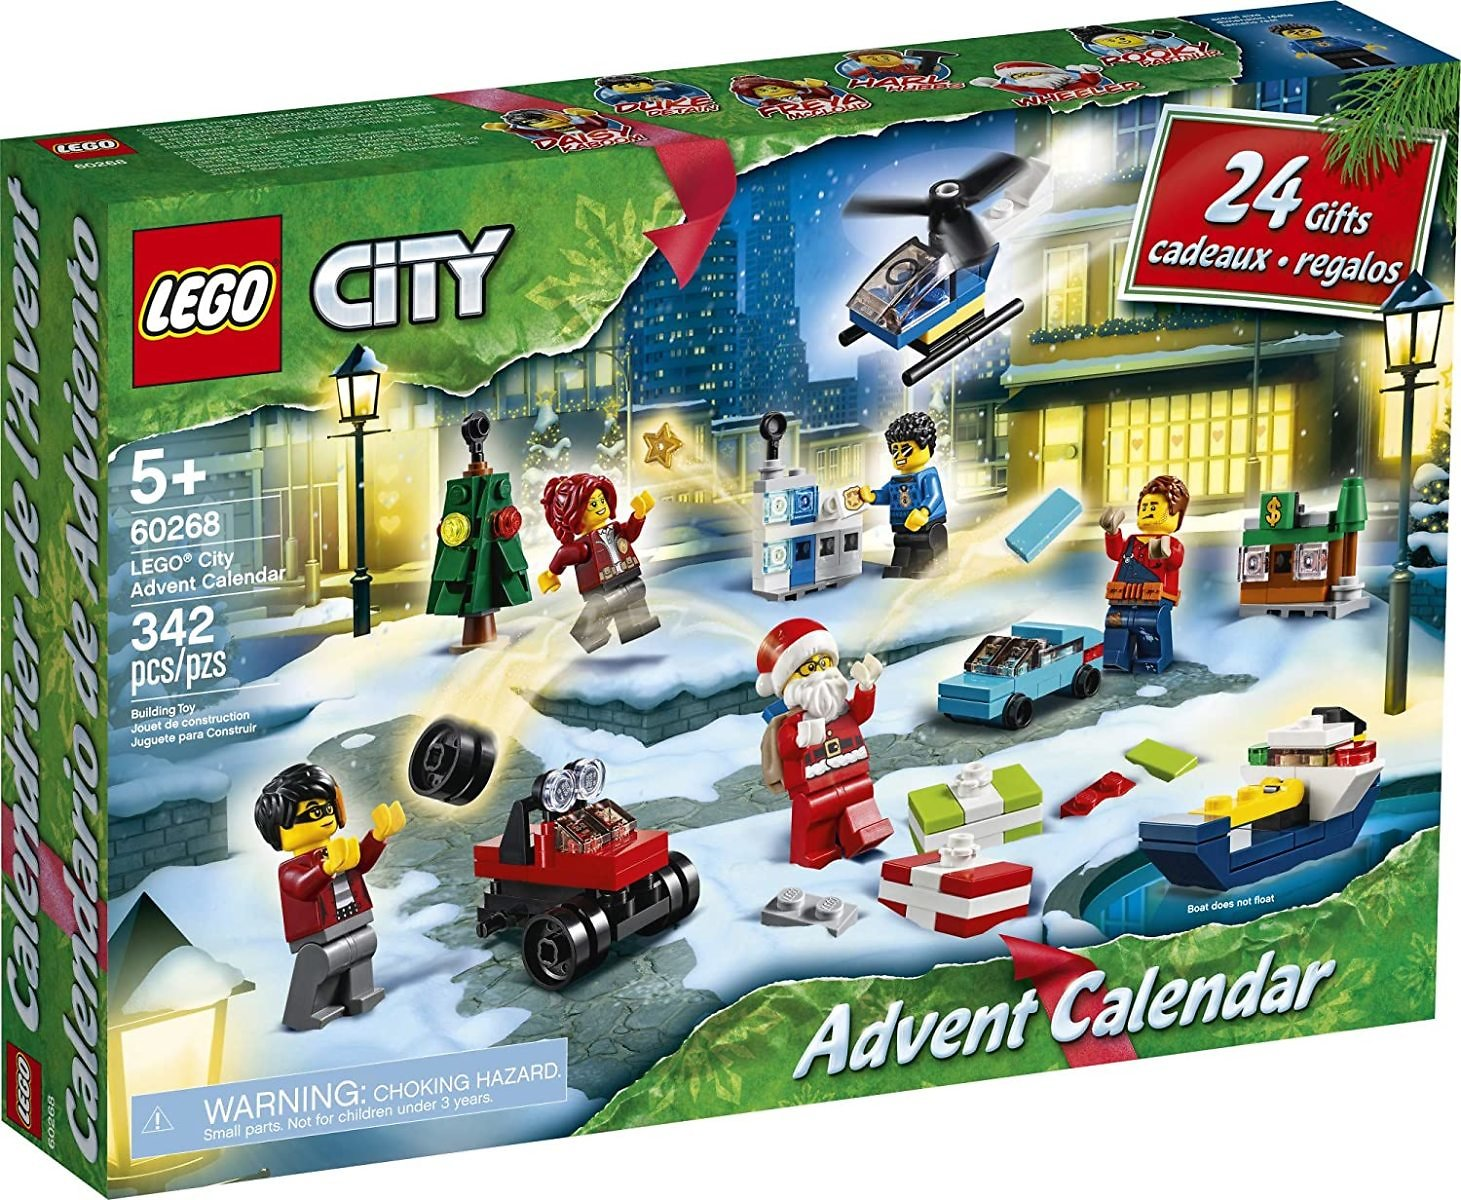 32% Off LEGO City Advent Calendar Playset, Includes 6 City Adventures TV Series Characters, Miniature Builds, City Play Mat